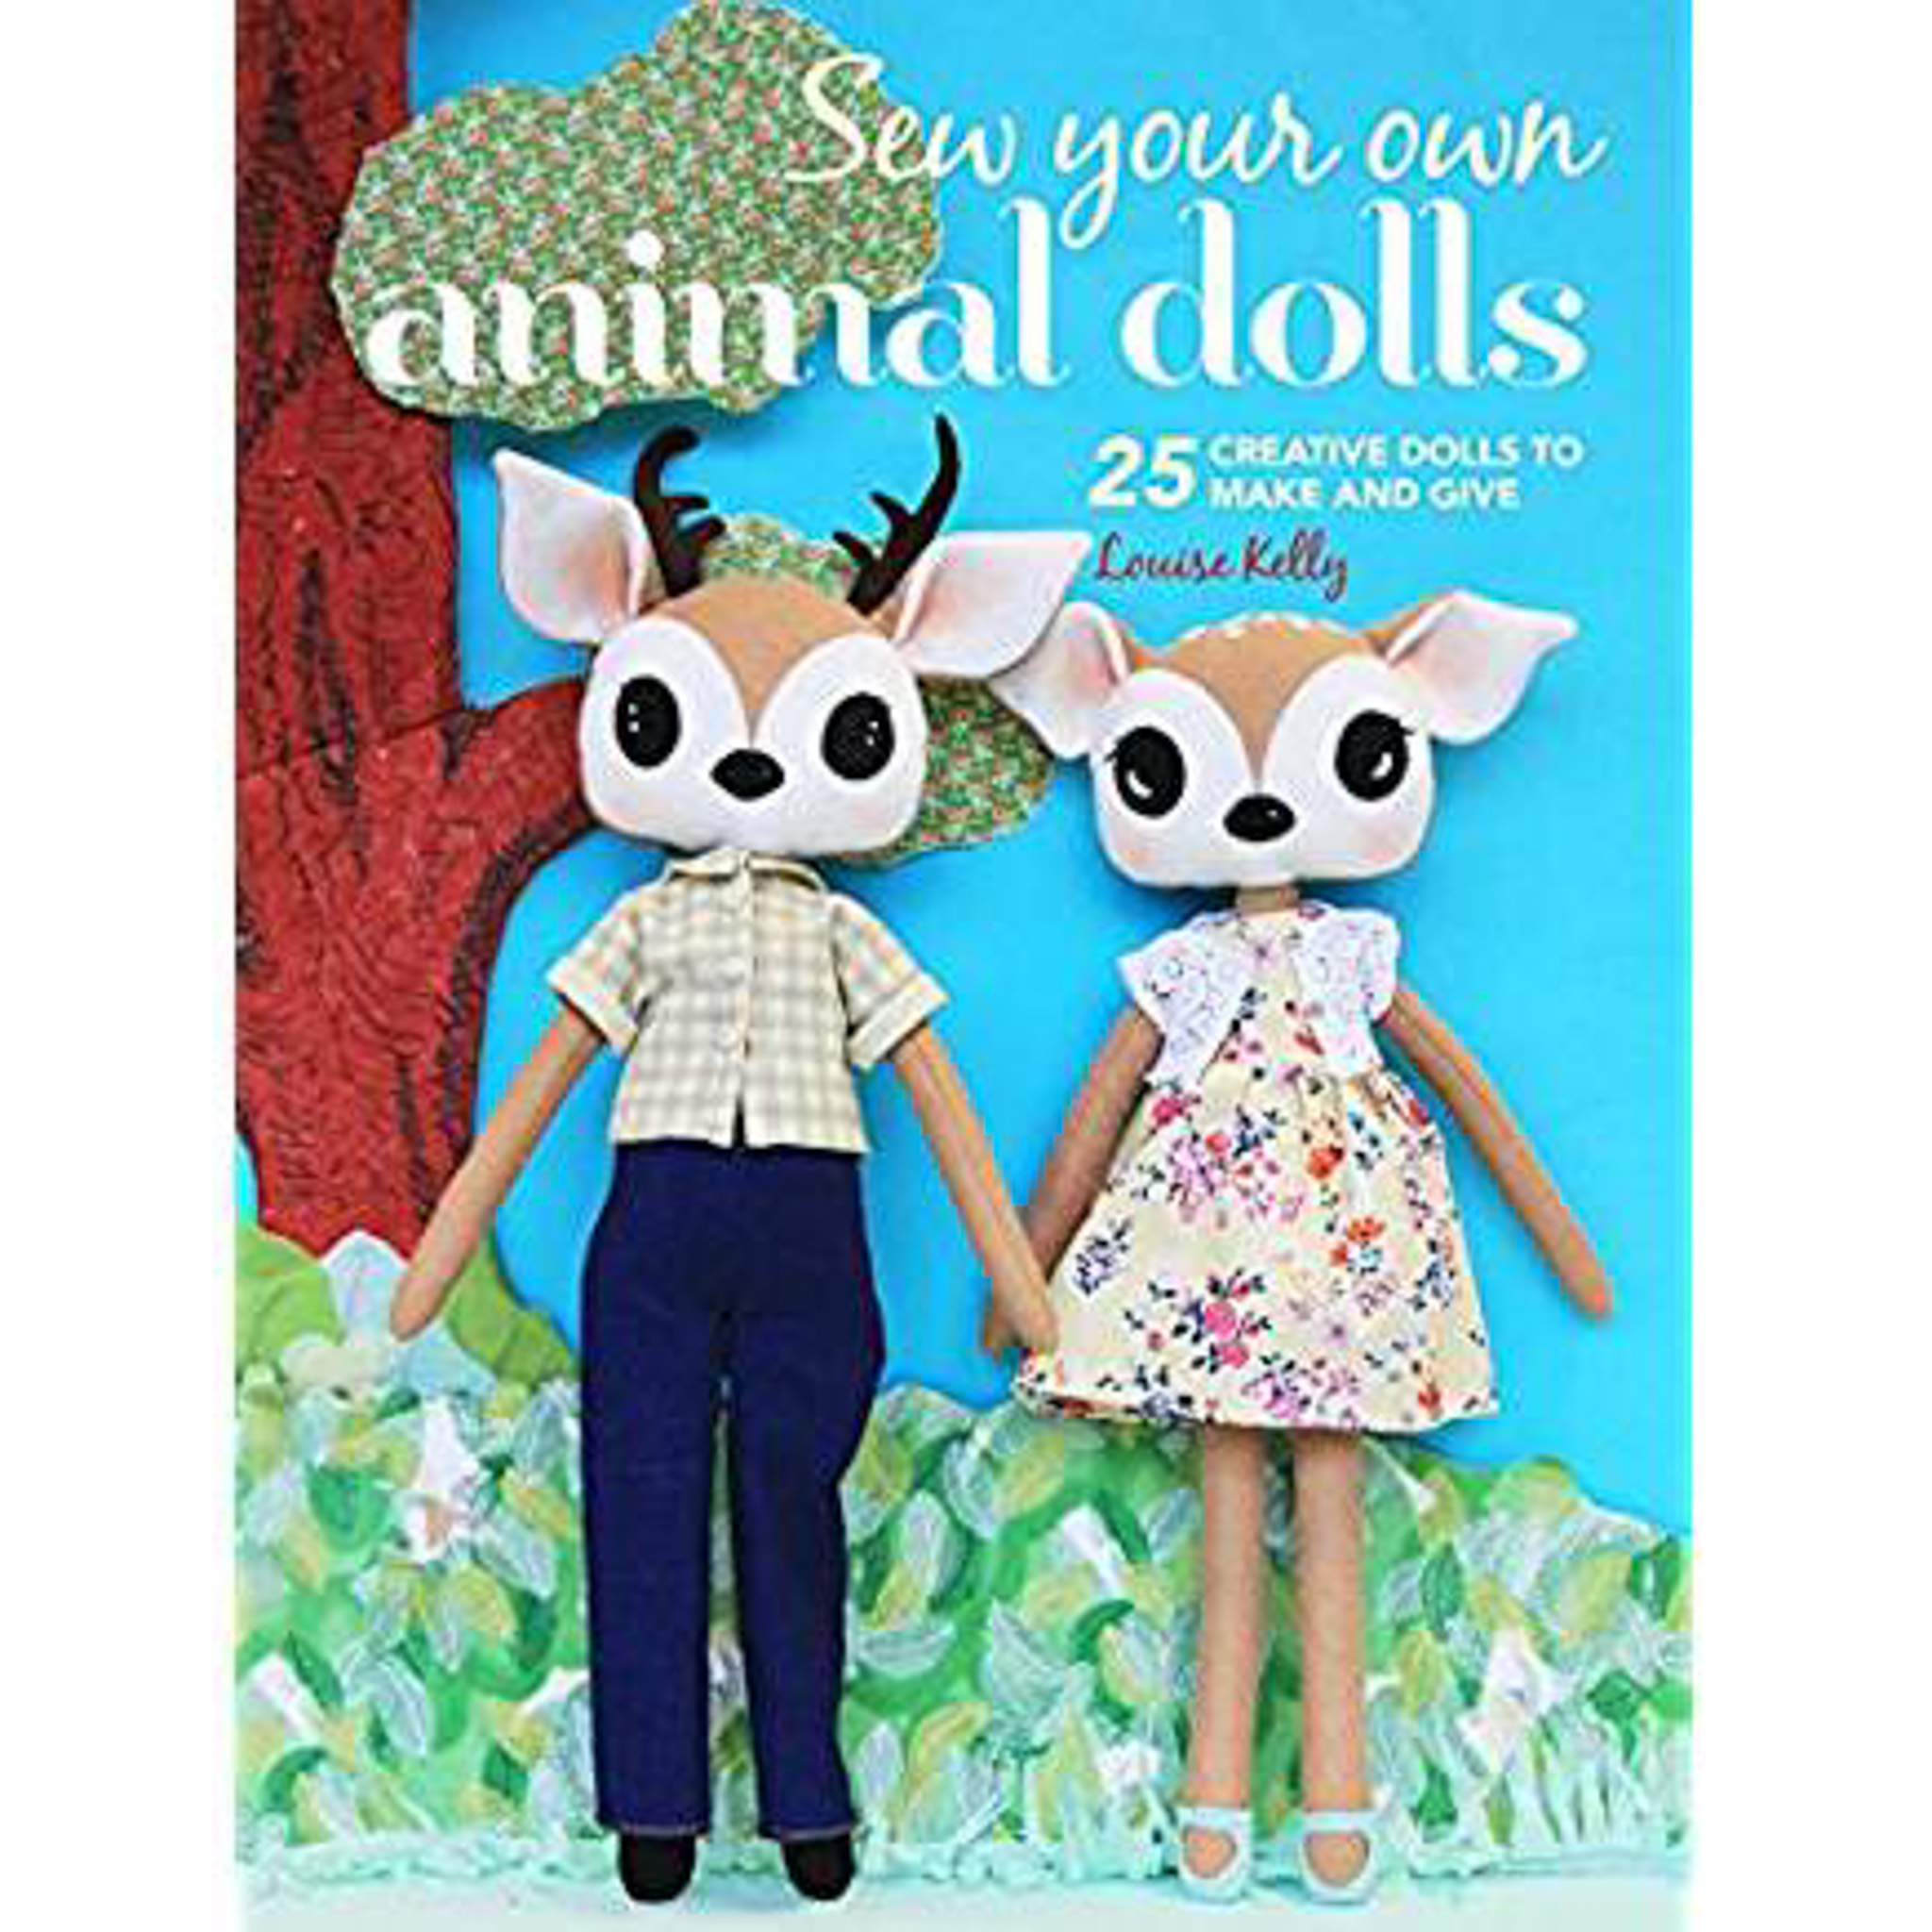 "Fabric Affair: "" Sew your own animal dolls by Louise Kelly""."